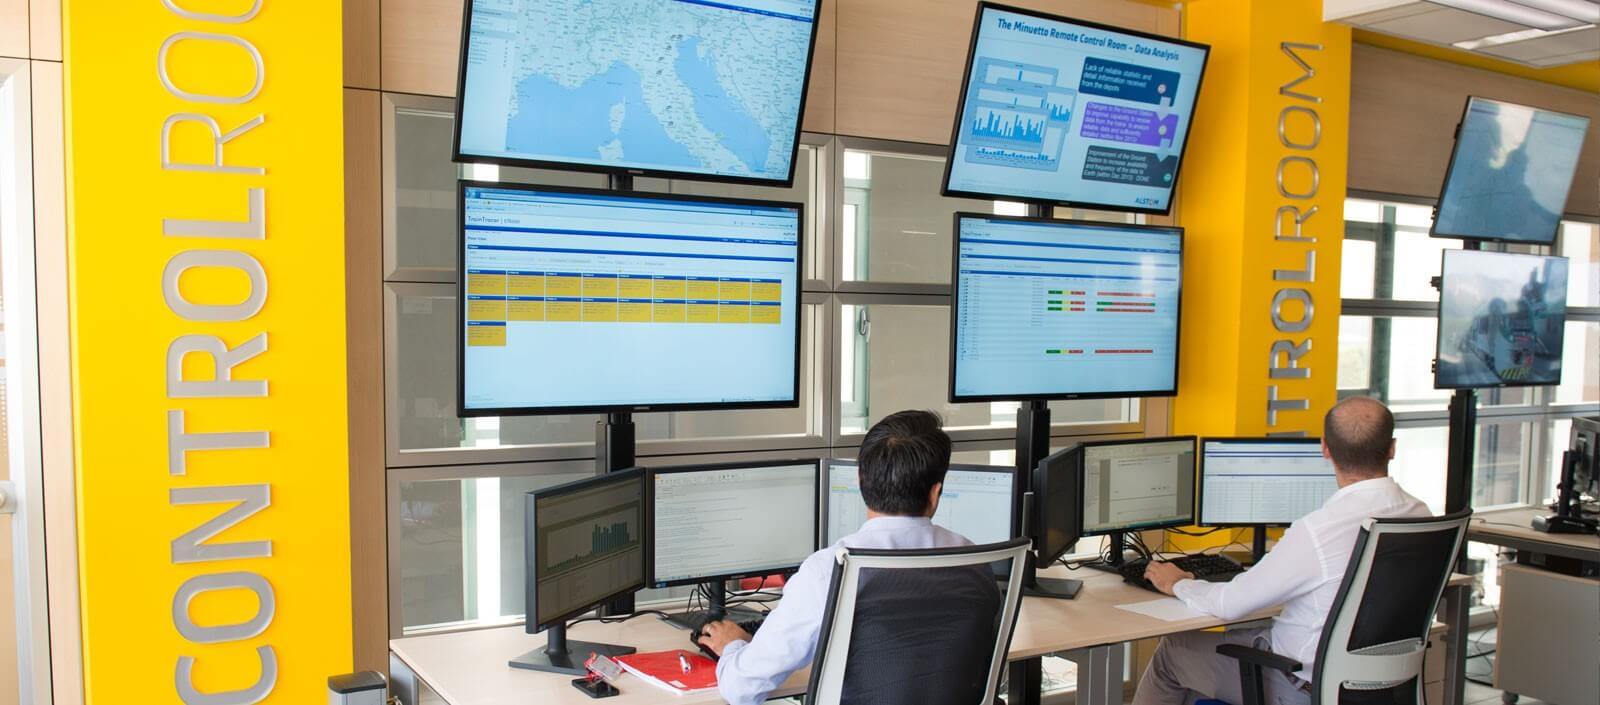 Control Room - Monitoring Center